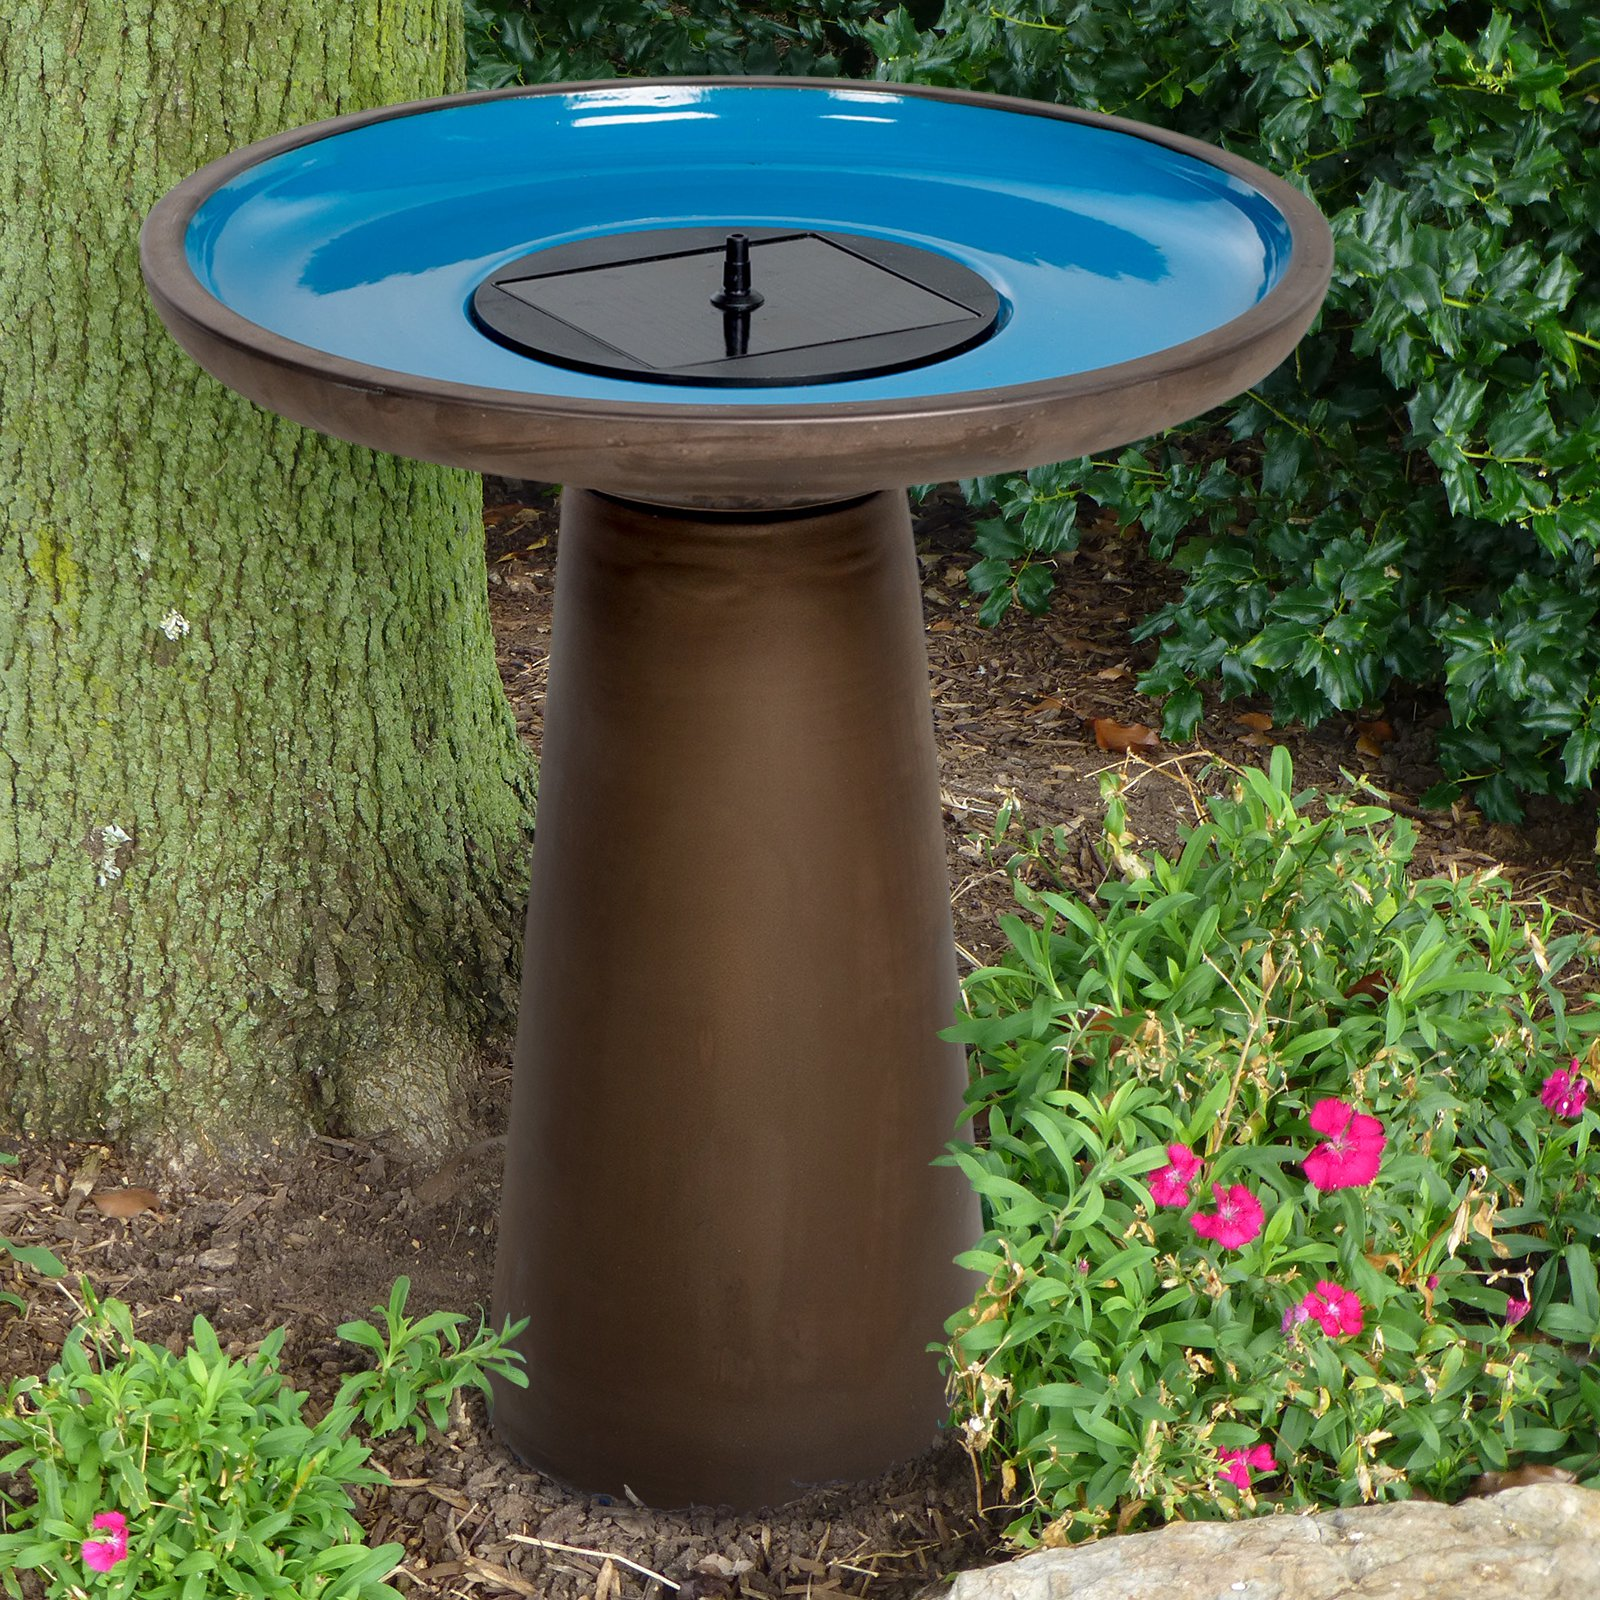 Belham Living Rooney Solar Ceramic Bird Bath by Smart Solar